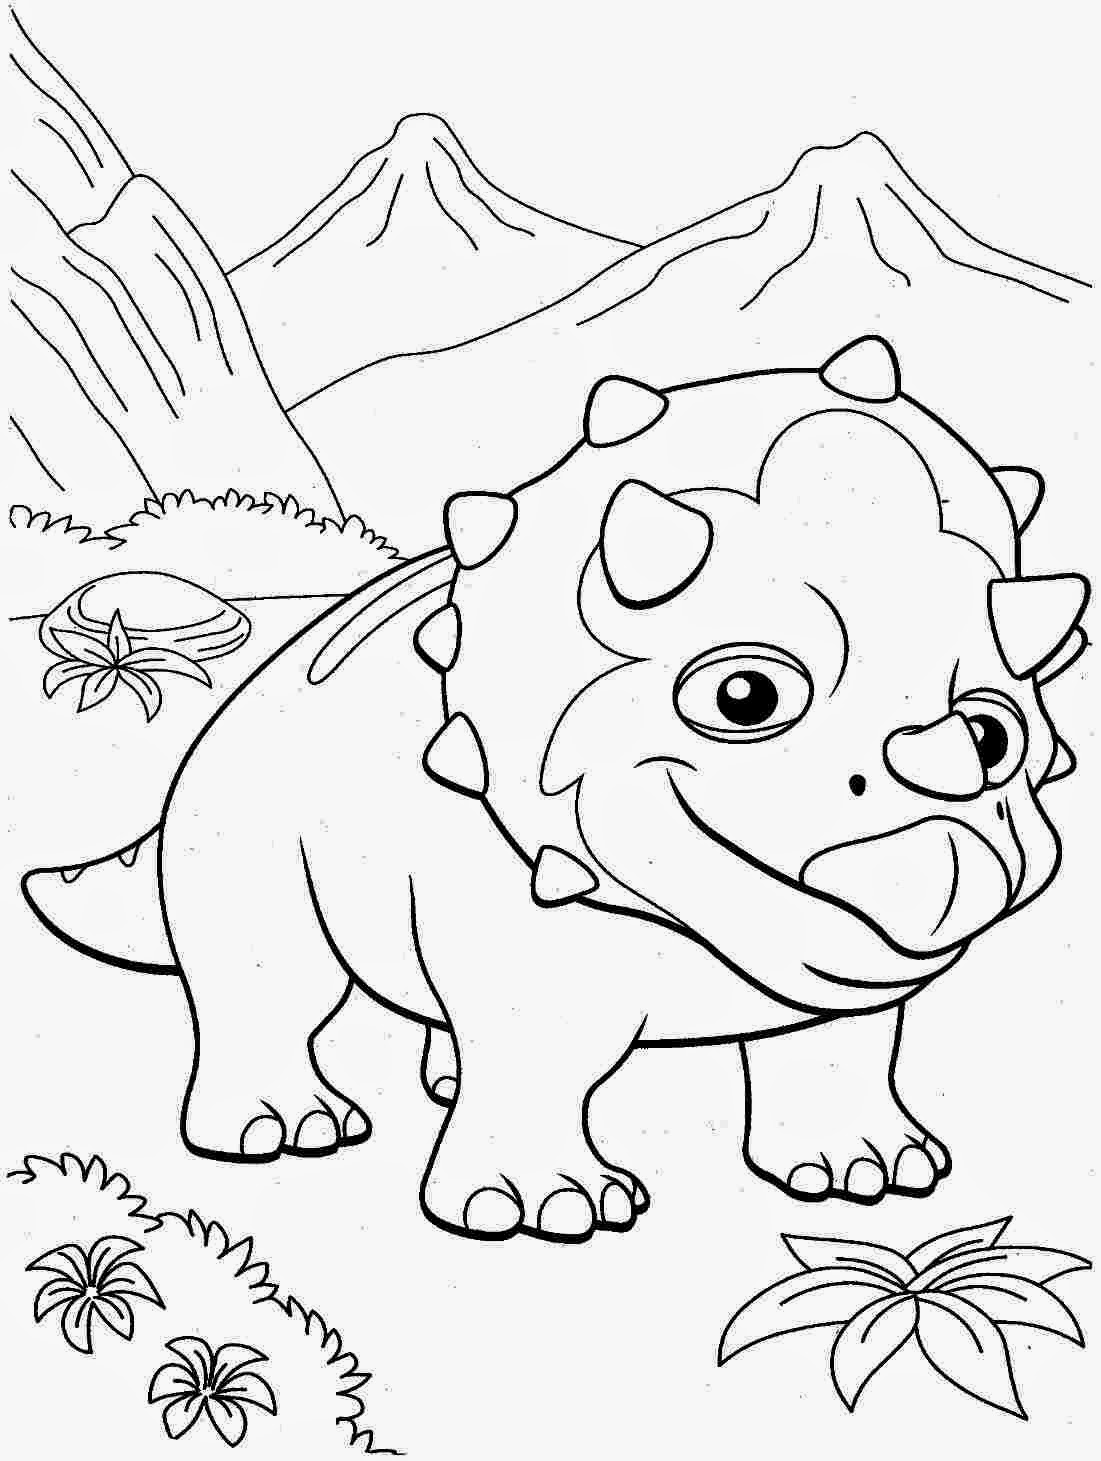 dinasour coloring pages coloring pages dinosaur free printable coloring pages coloring dinasour pages 1 2